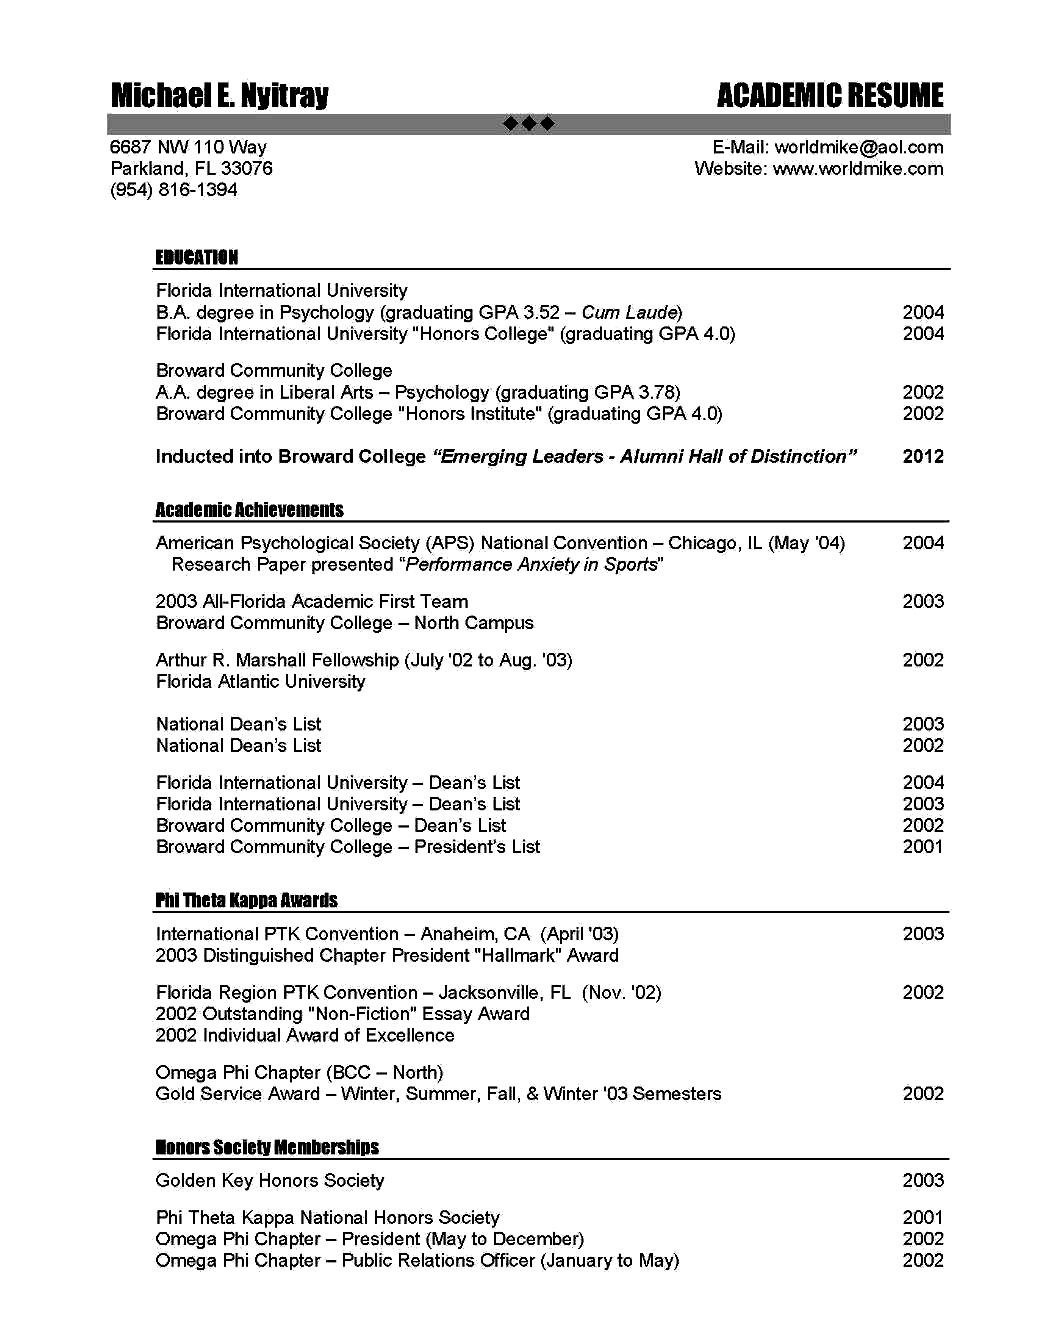 Teacher Resume Examples Teaching Education Resume For Academic Position Free Samples Examples